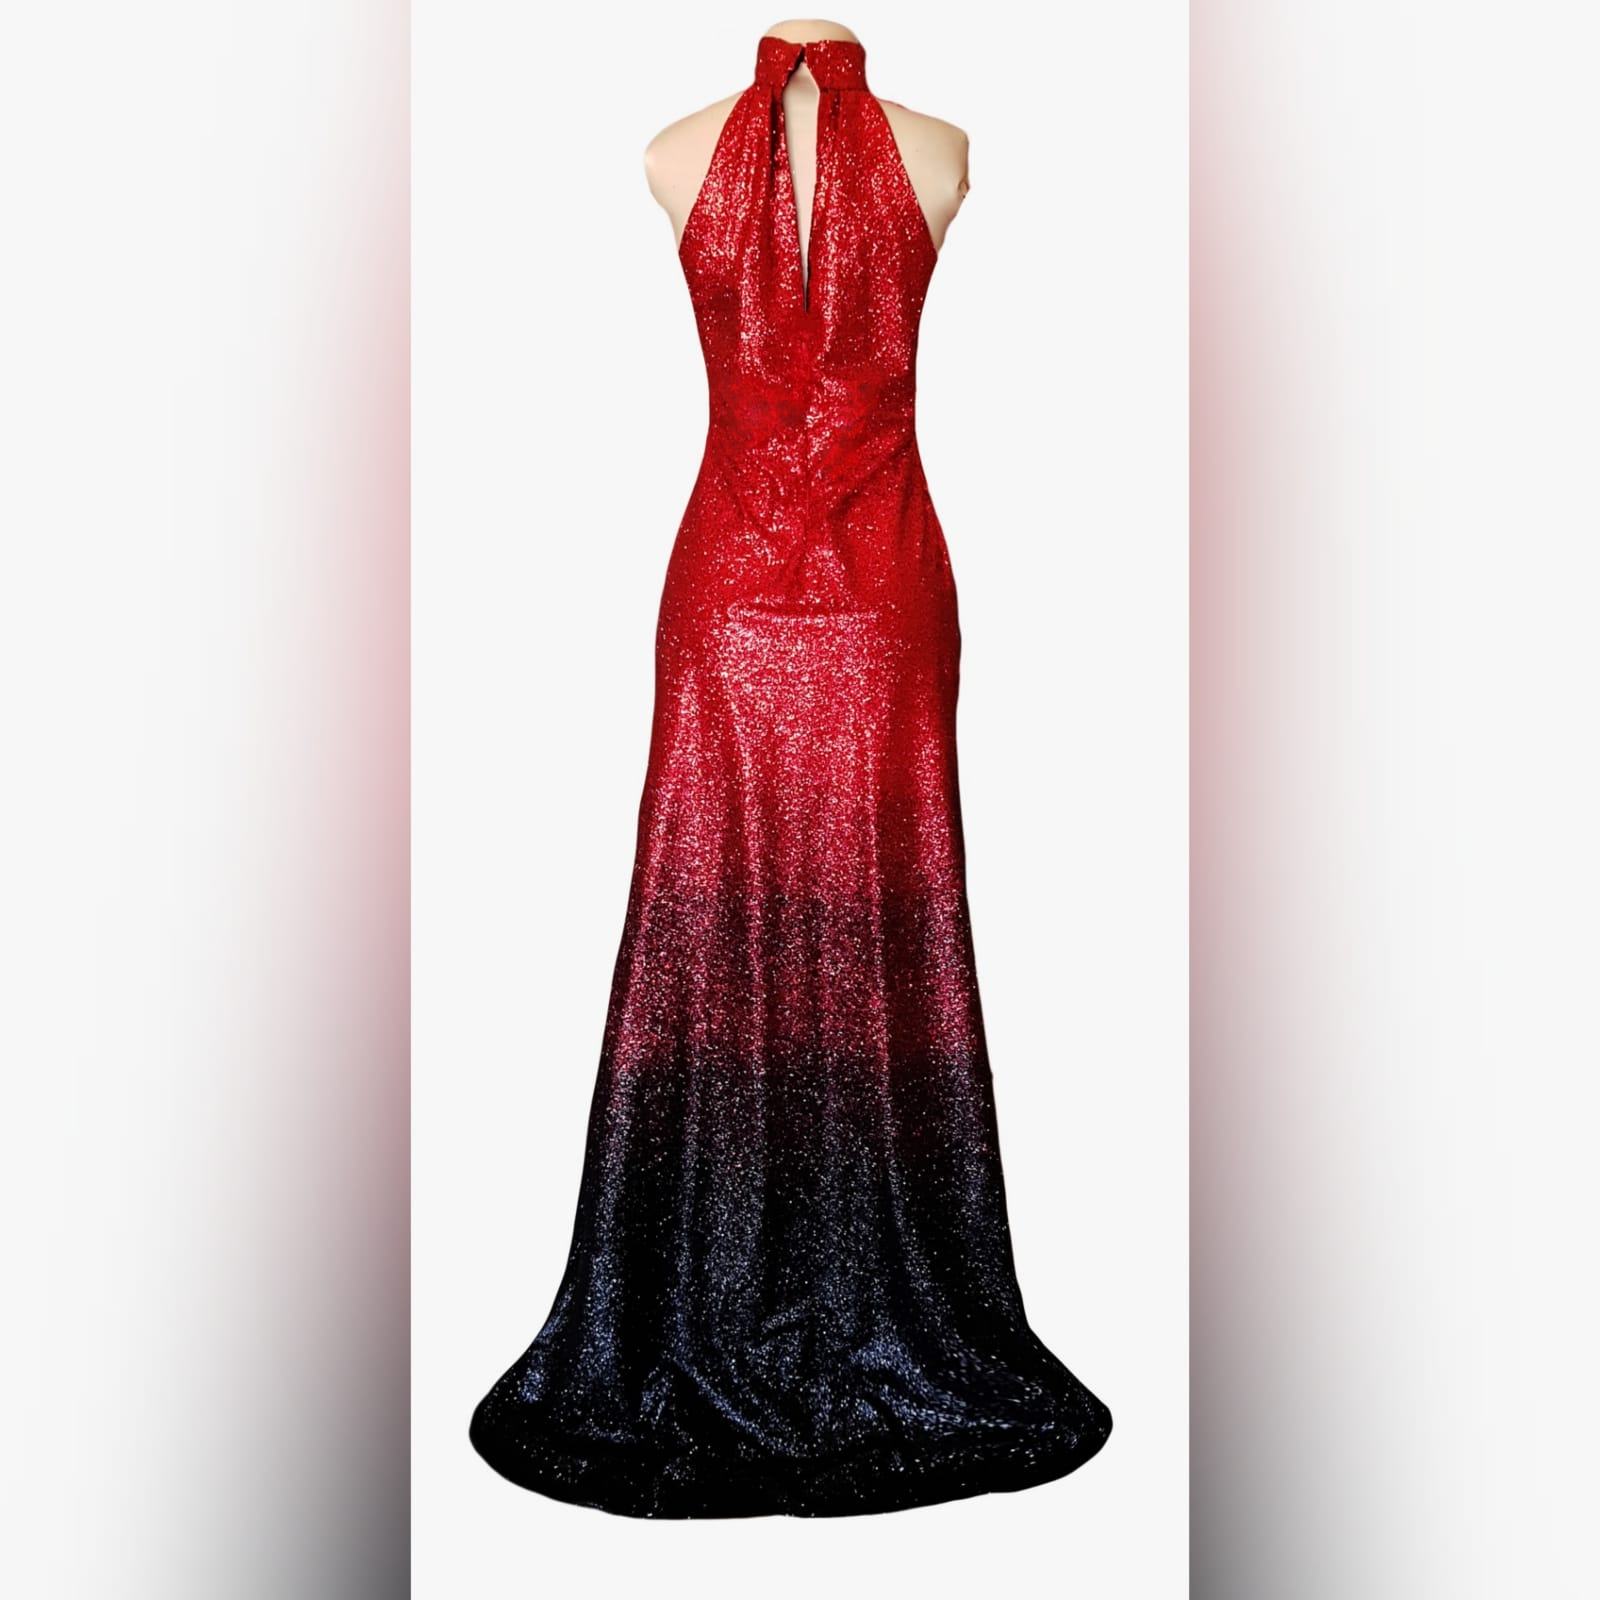 Glittered red and black ombre evening dress 10 want to be the shine at your prom gala? Wear a stunning fully glitter red and black ombre evening dress. With a high slit for a touch of sexy to your radical look.